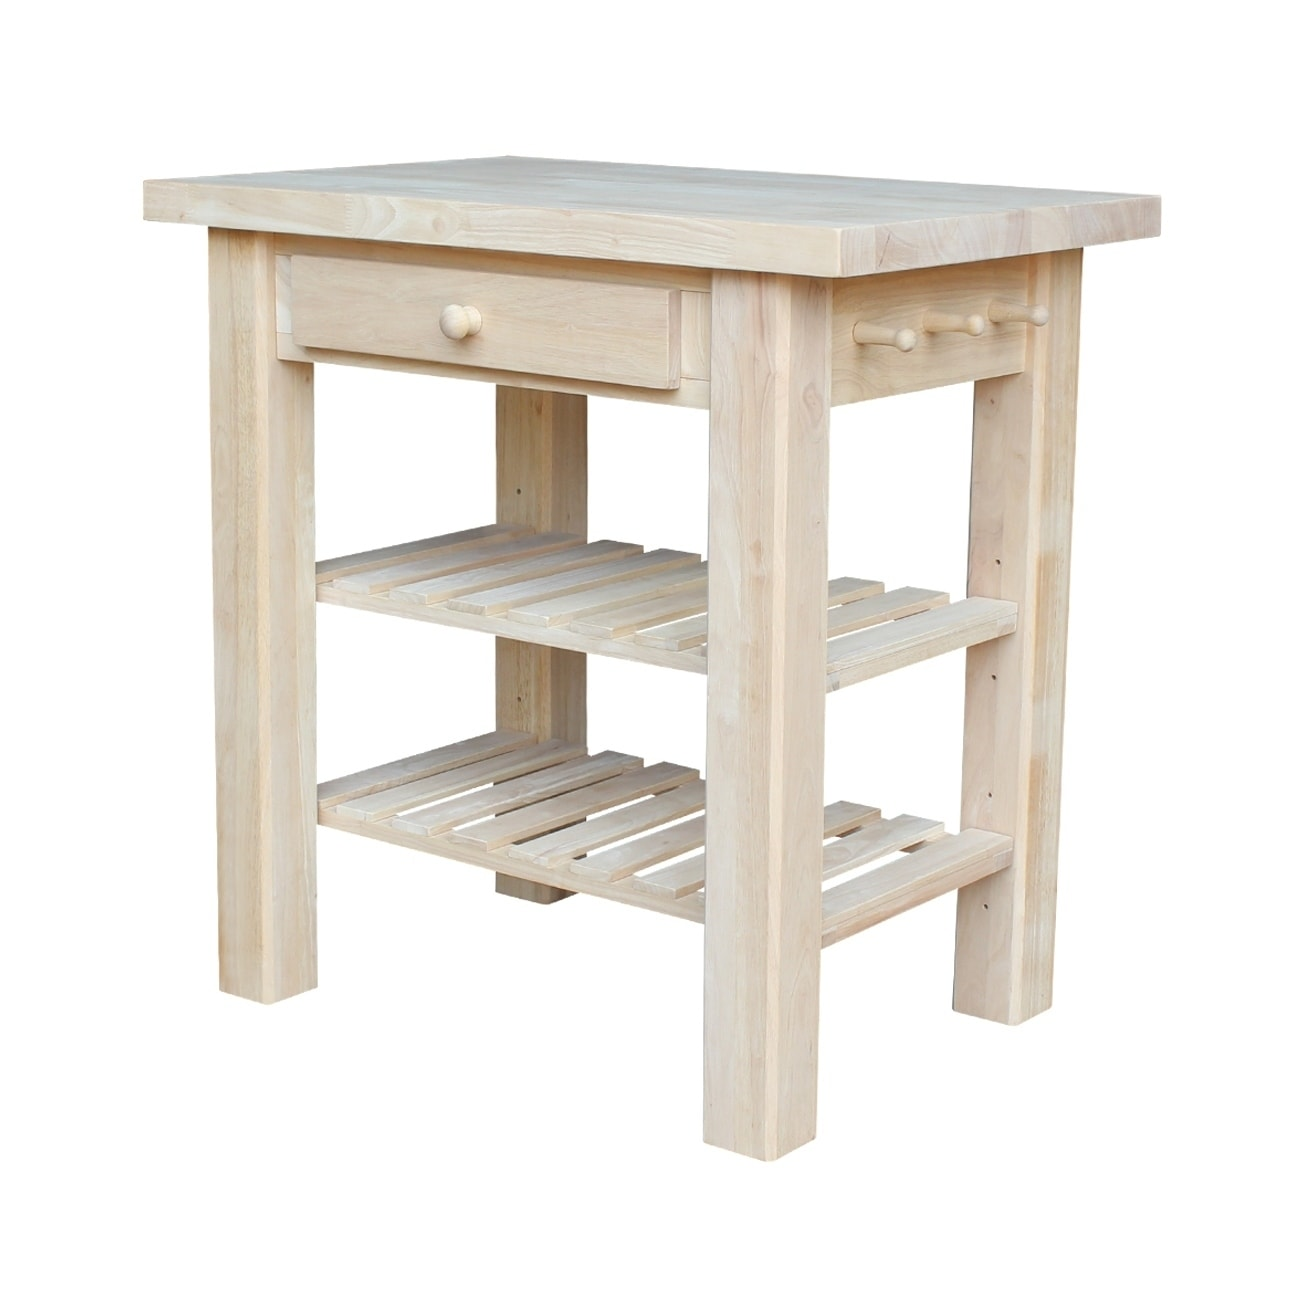 Unfinished Kitchen Island: Shop Gracewood Hollow Harry Unfinished Solid Parawood